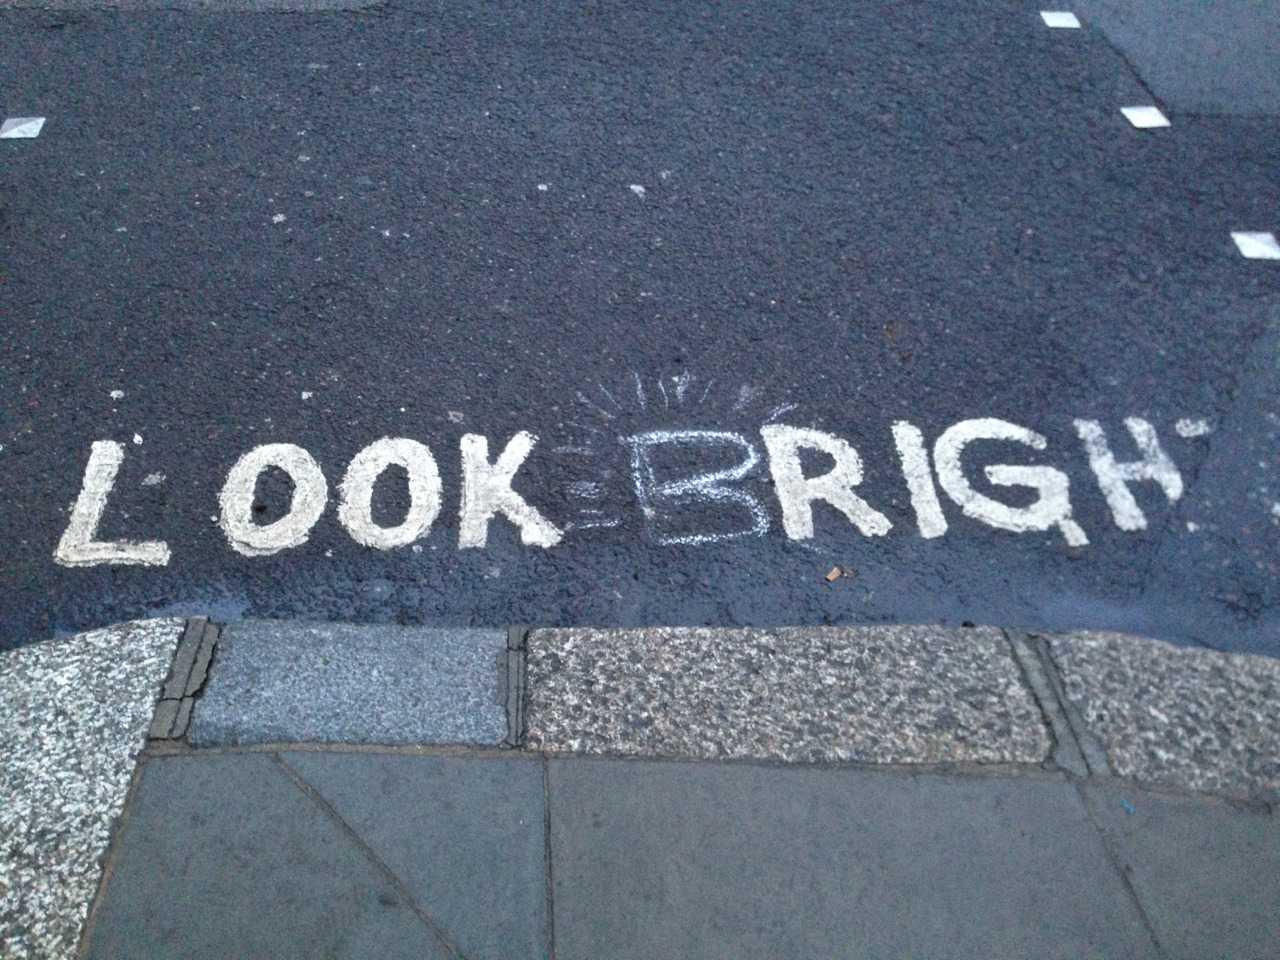 Spotted while crossing the street in London last week :)